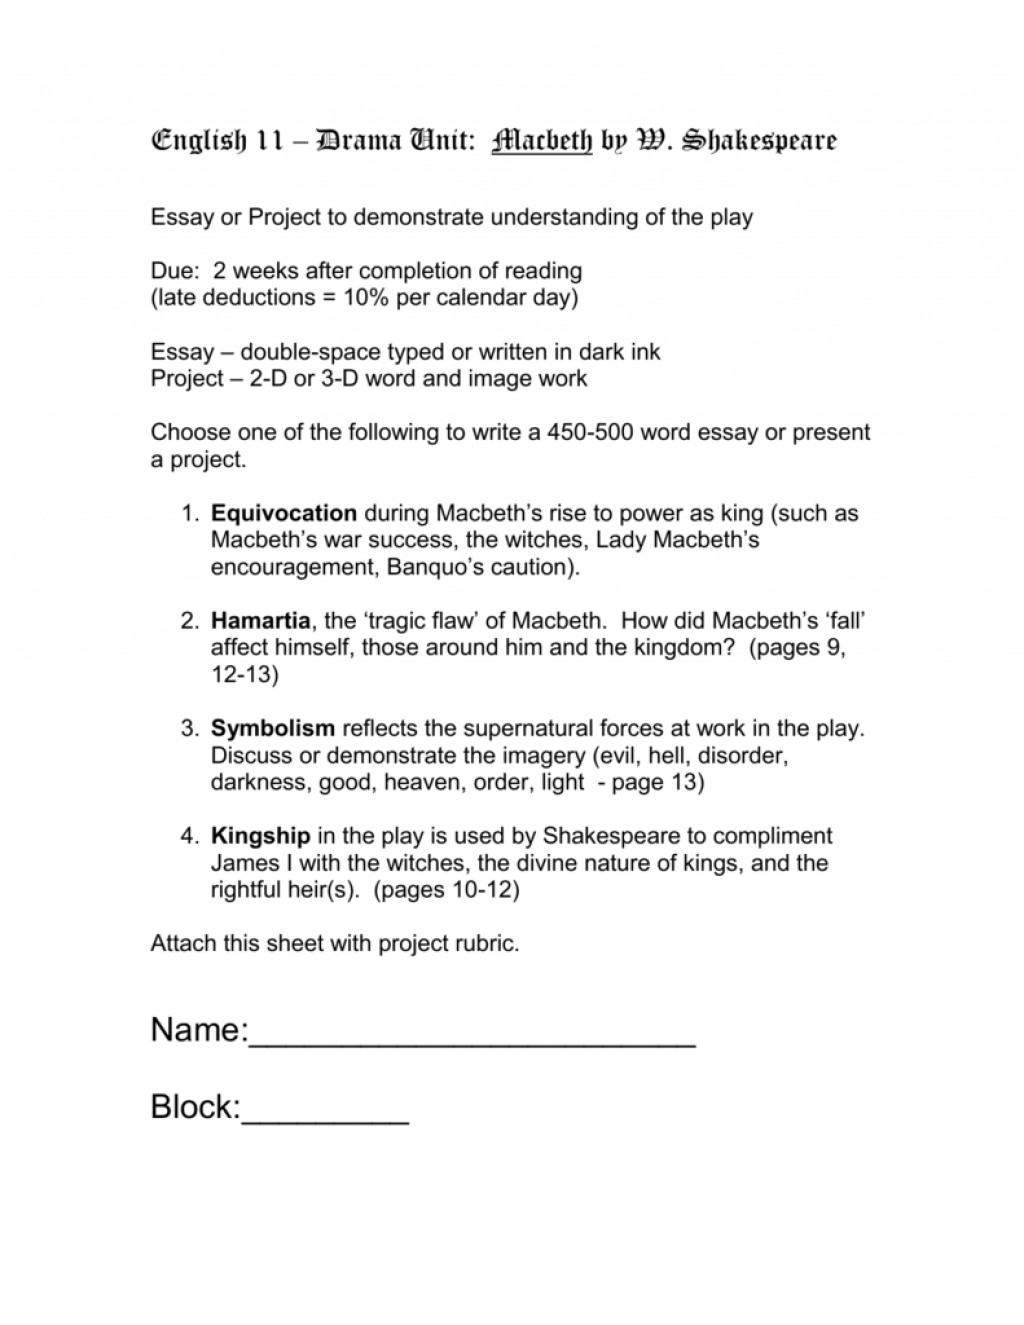 004 Essay On Macbeth Example 008031785 1 Marvelous And Lady Macbeth's Relationship Literary As A Tragic Hero Plan Large